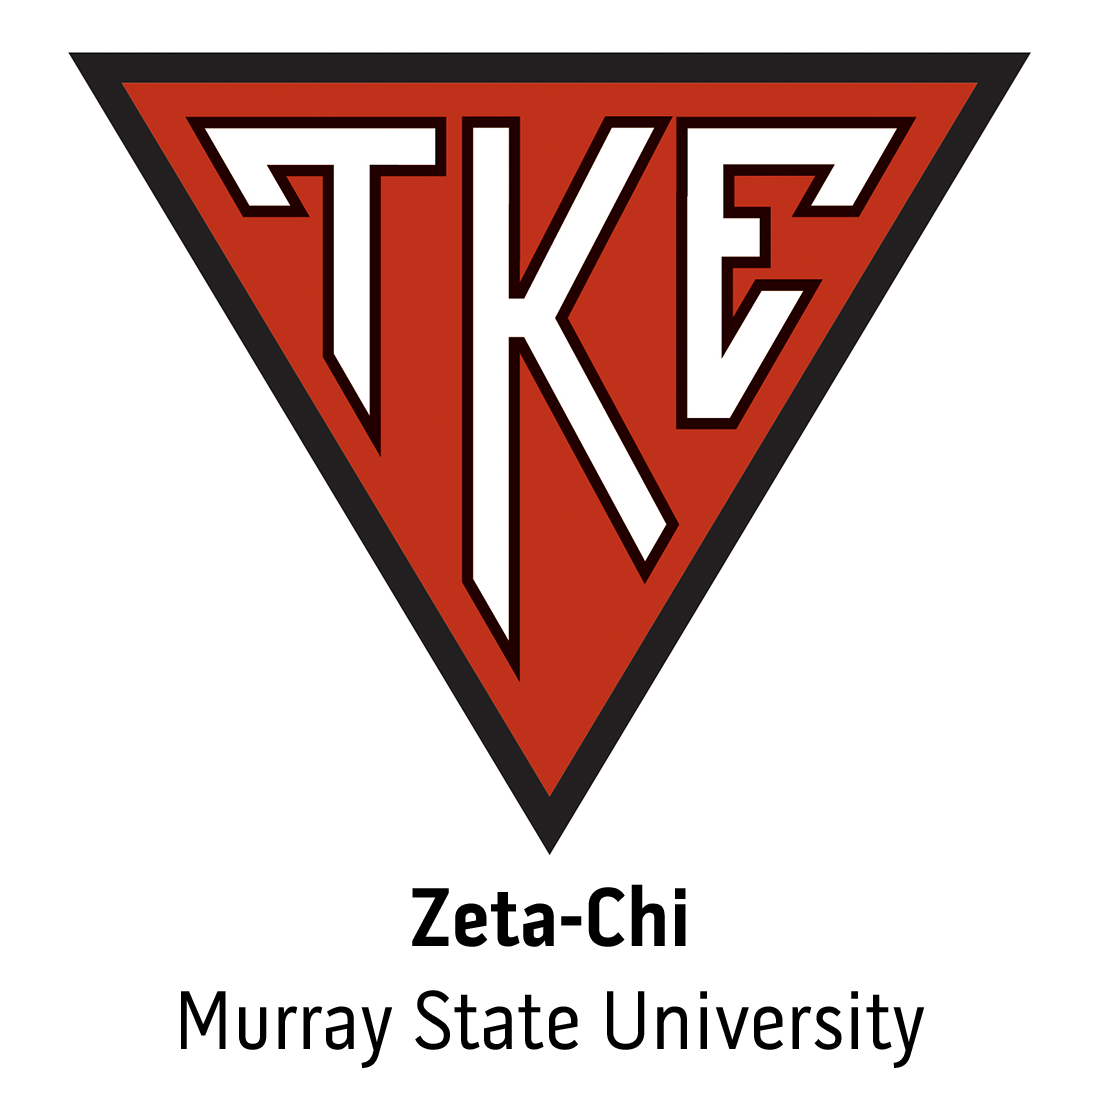 Zeta-Chi Chapter at Murray State University